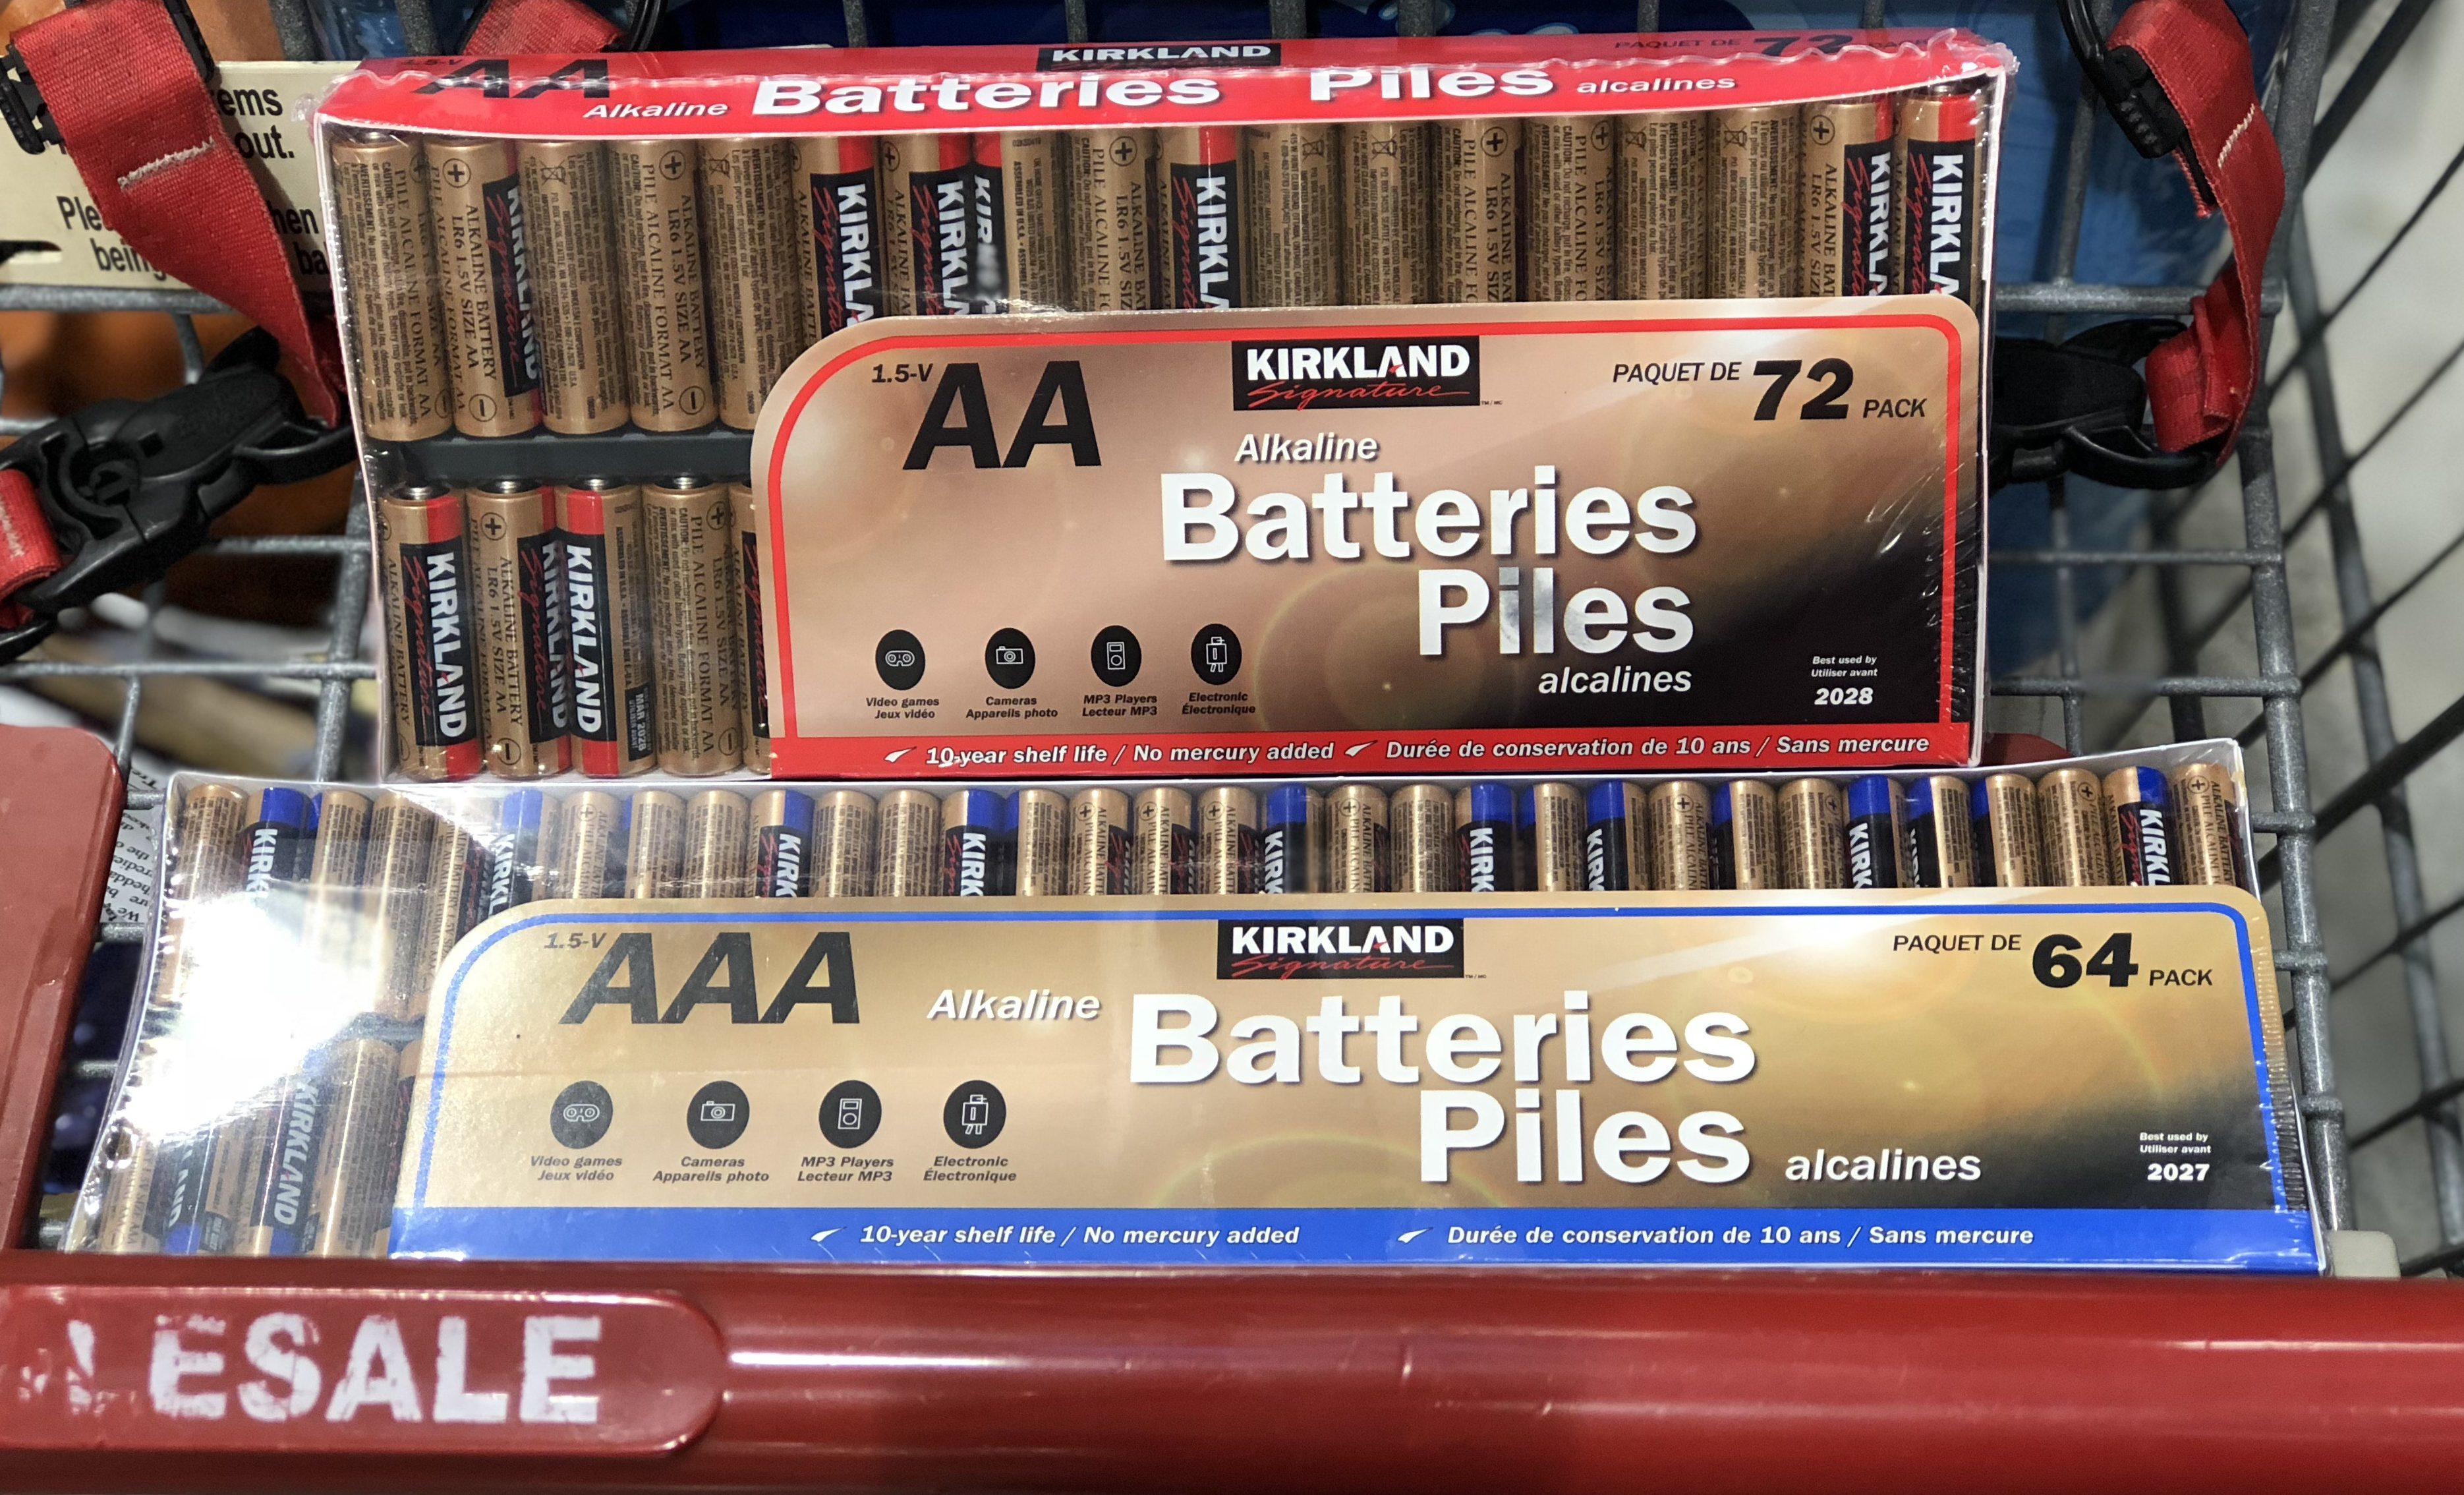 name brands sometimes make costco items, like these Costco brand batteries